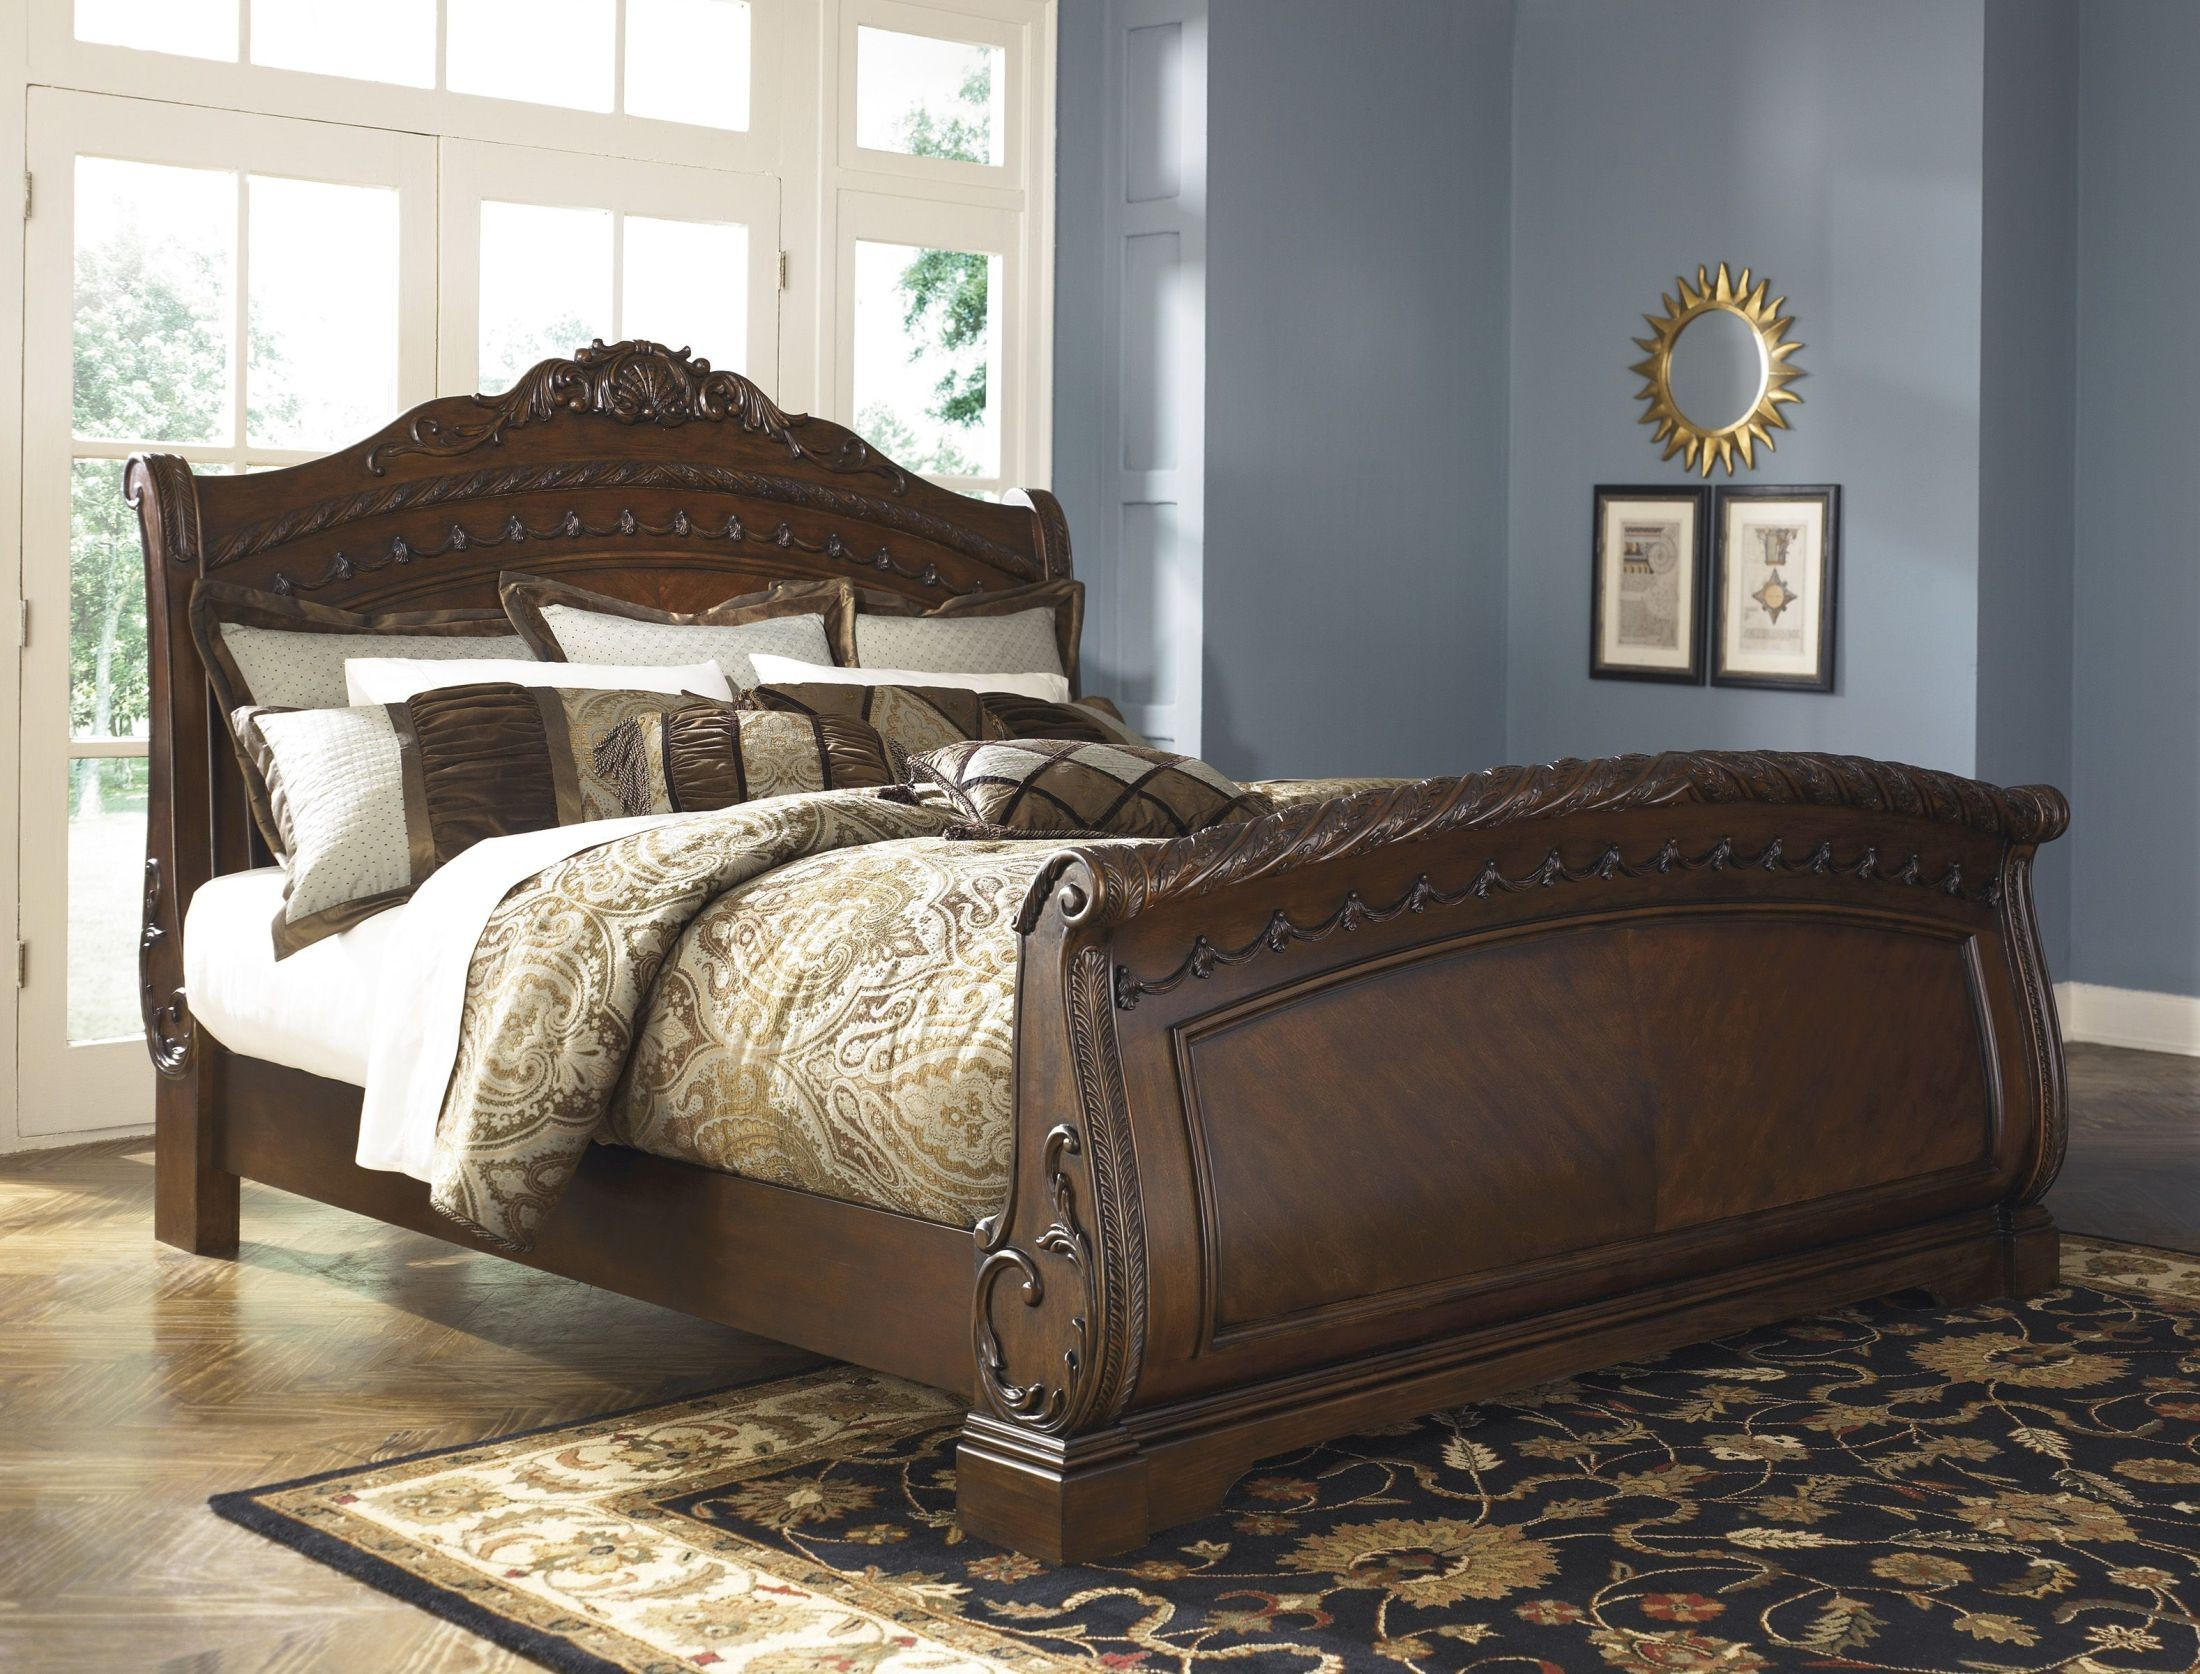 Bedroom sets coleman furniture - 550247